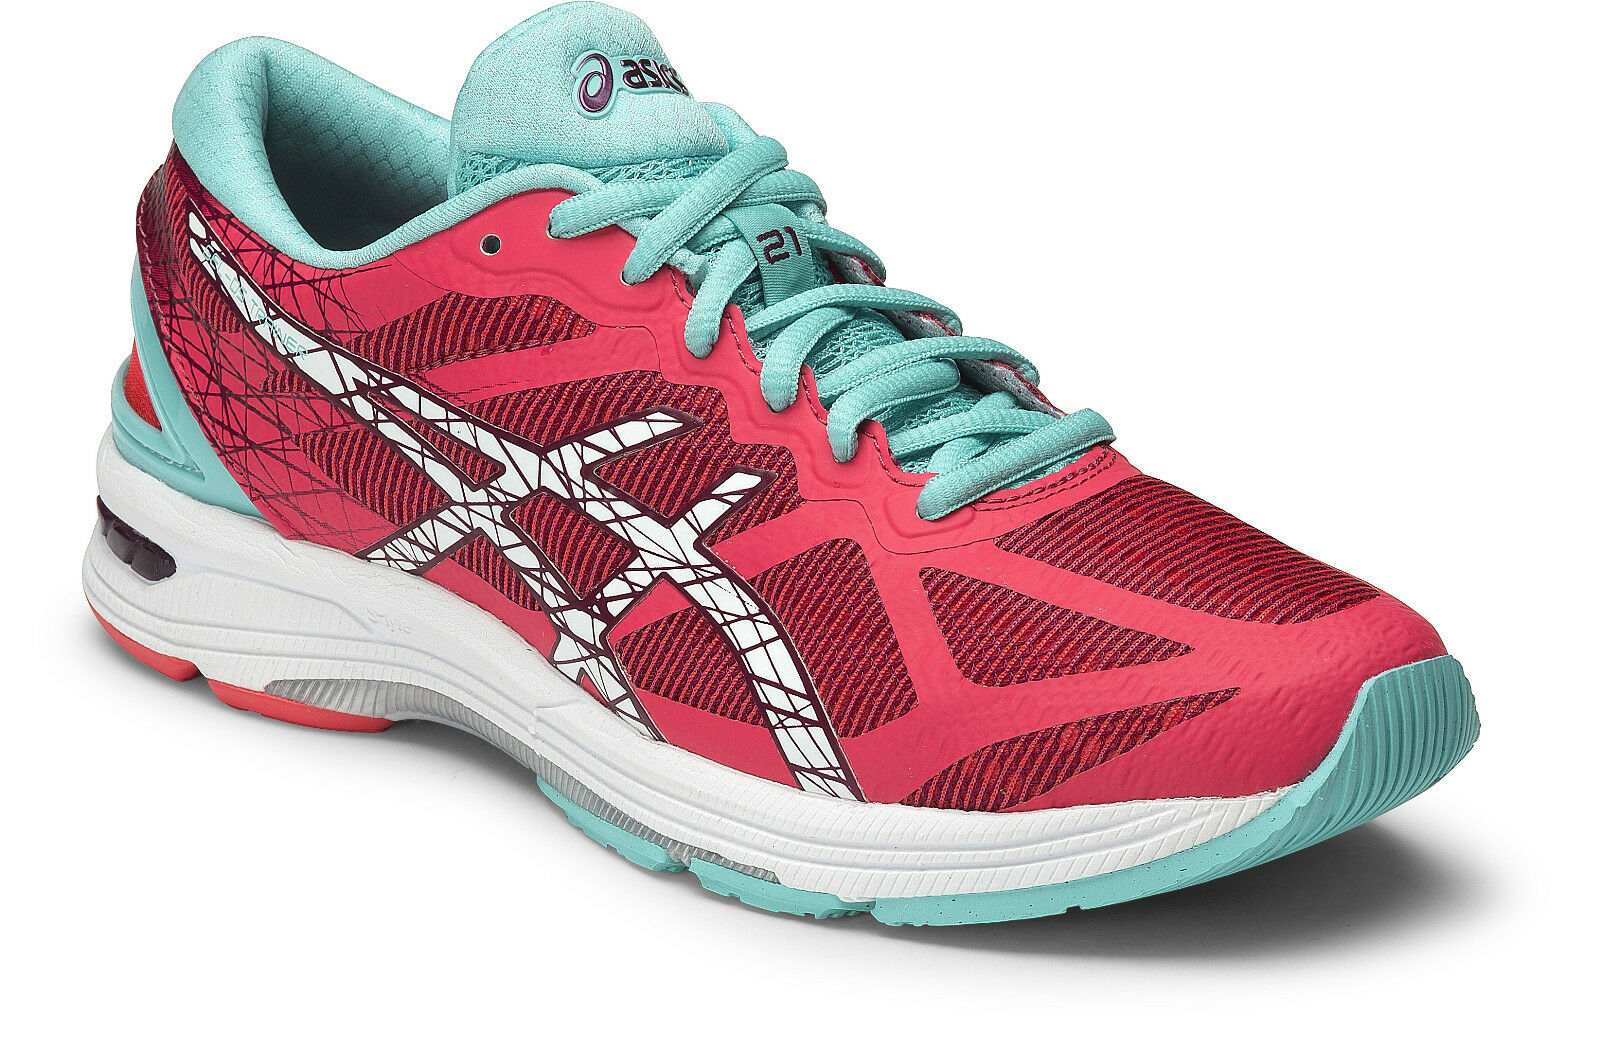 Asics Gel DS Trainer 21 Womens Running Shoes Price reduction Price reduction + FREE AUS DELIVERY Casual wild